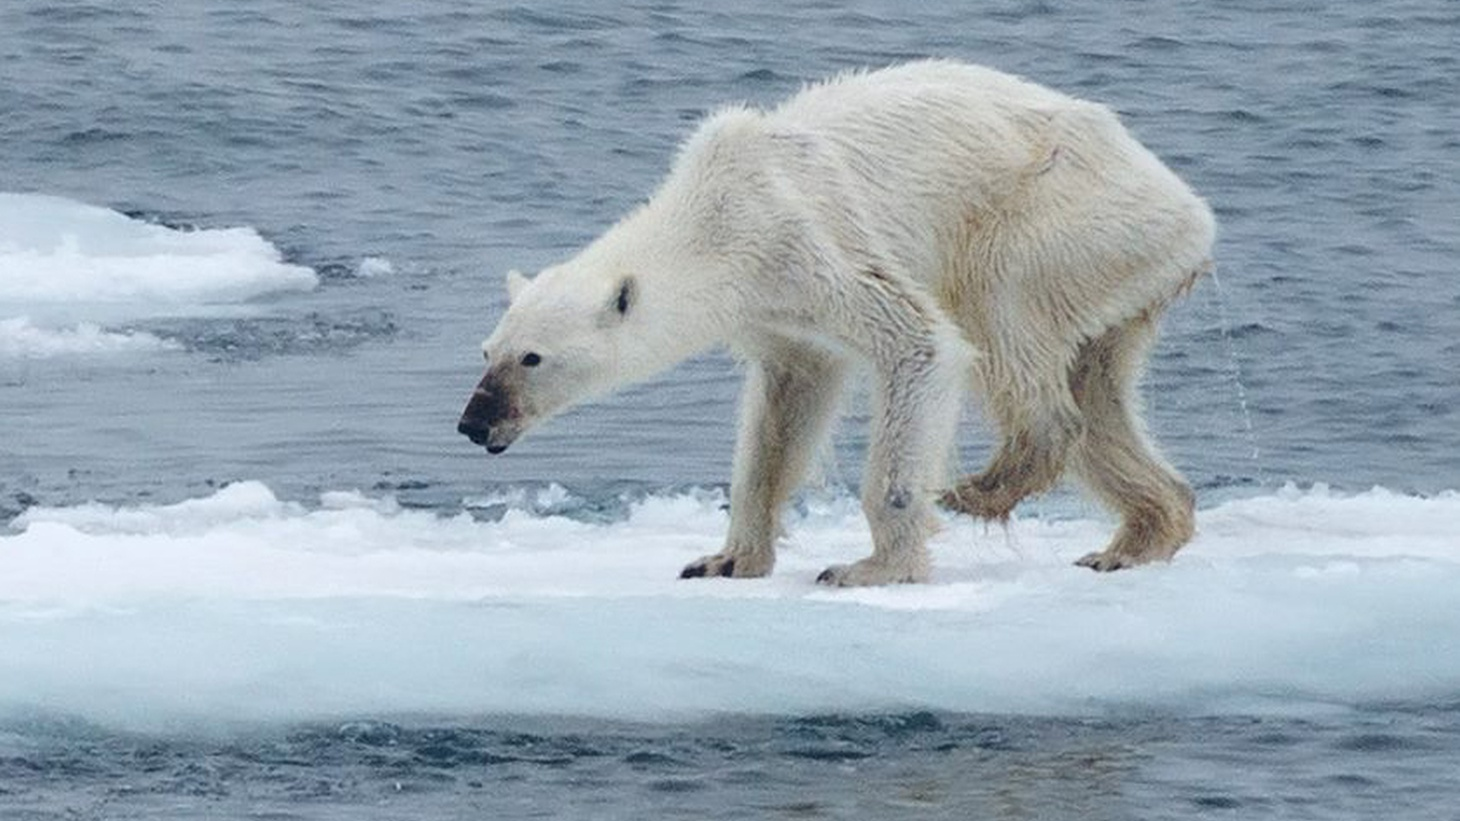 Among the most conspicuous victims of climate change are polar bears. Now, a disturbing photograph of a polar bear has gone viral. The creature is reduced almost to skin and bone, hobbling along a narrow ice sheet somewhere in the Arctic. It's a graphic illustration of the devastating impact of climate change on wildlife.